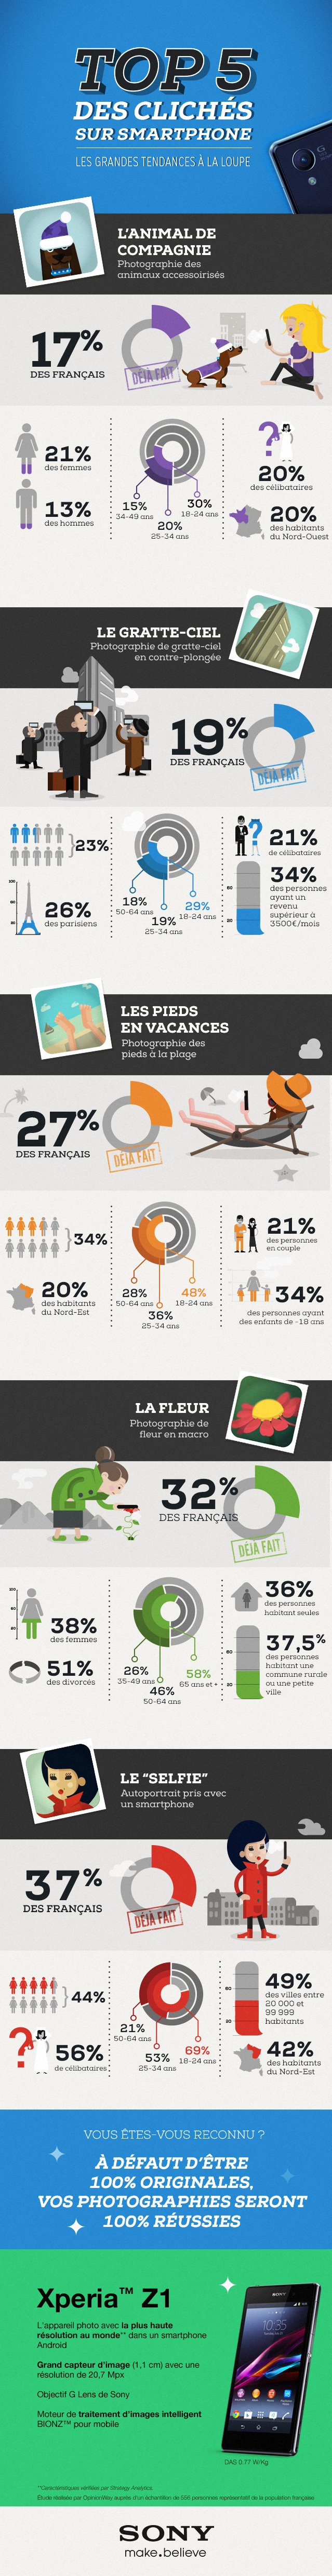 infographie_top5-des-cliches-sur-smartphone-XPERIA-Z1_by_Cedric-Audinot